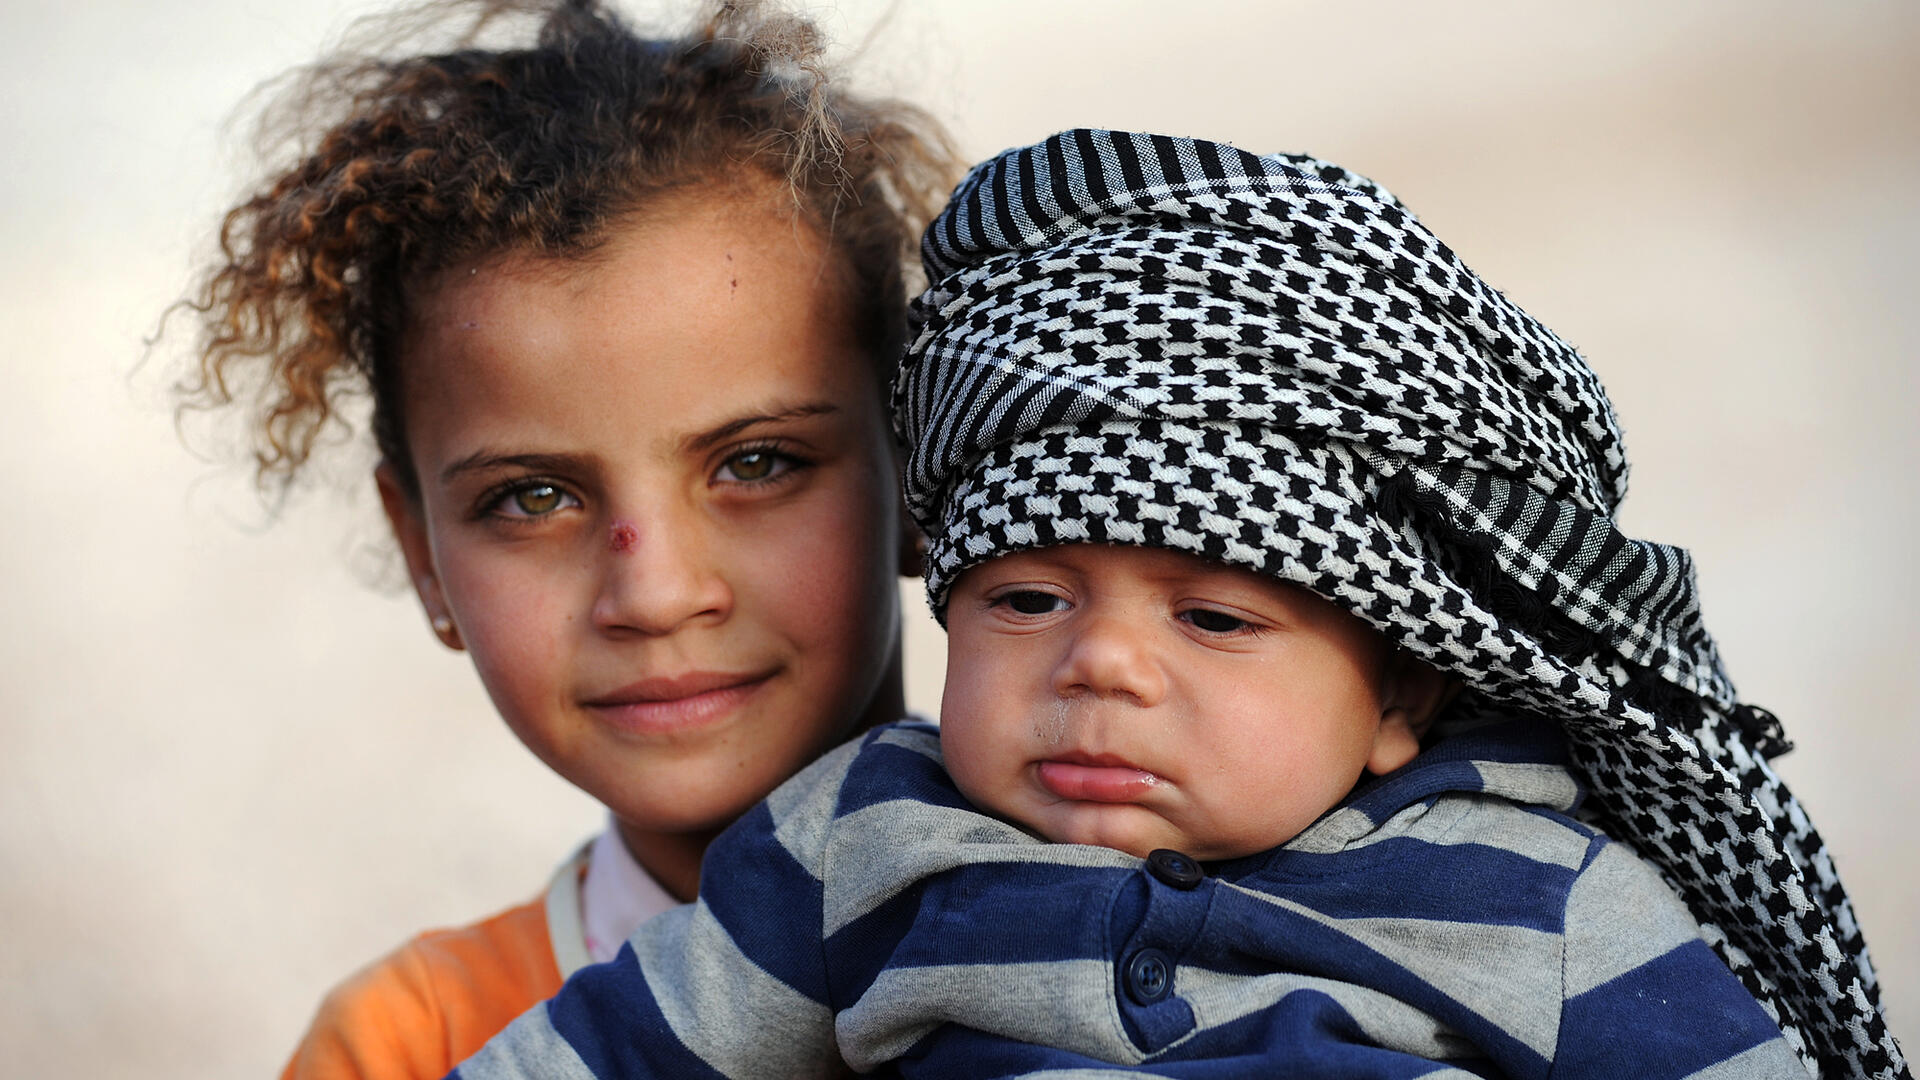 Two Syrian refugee children in Zaatari camp, northern Jordan.